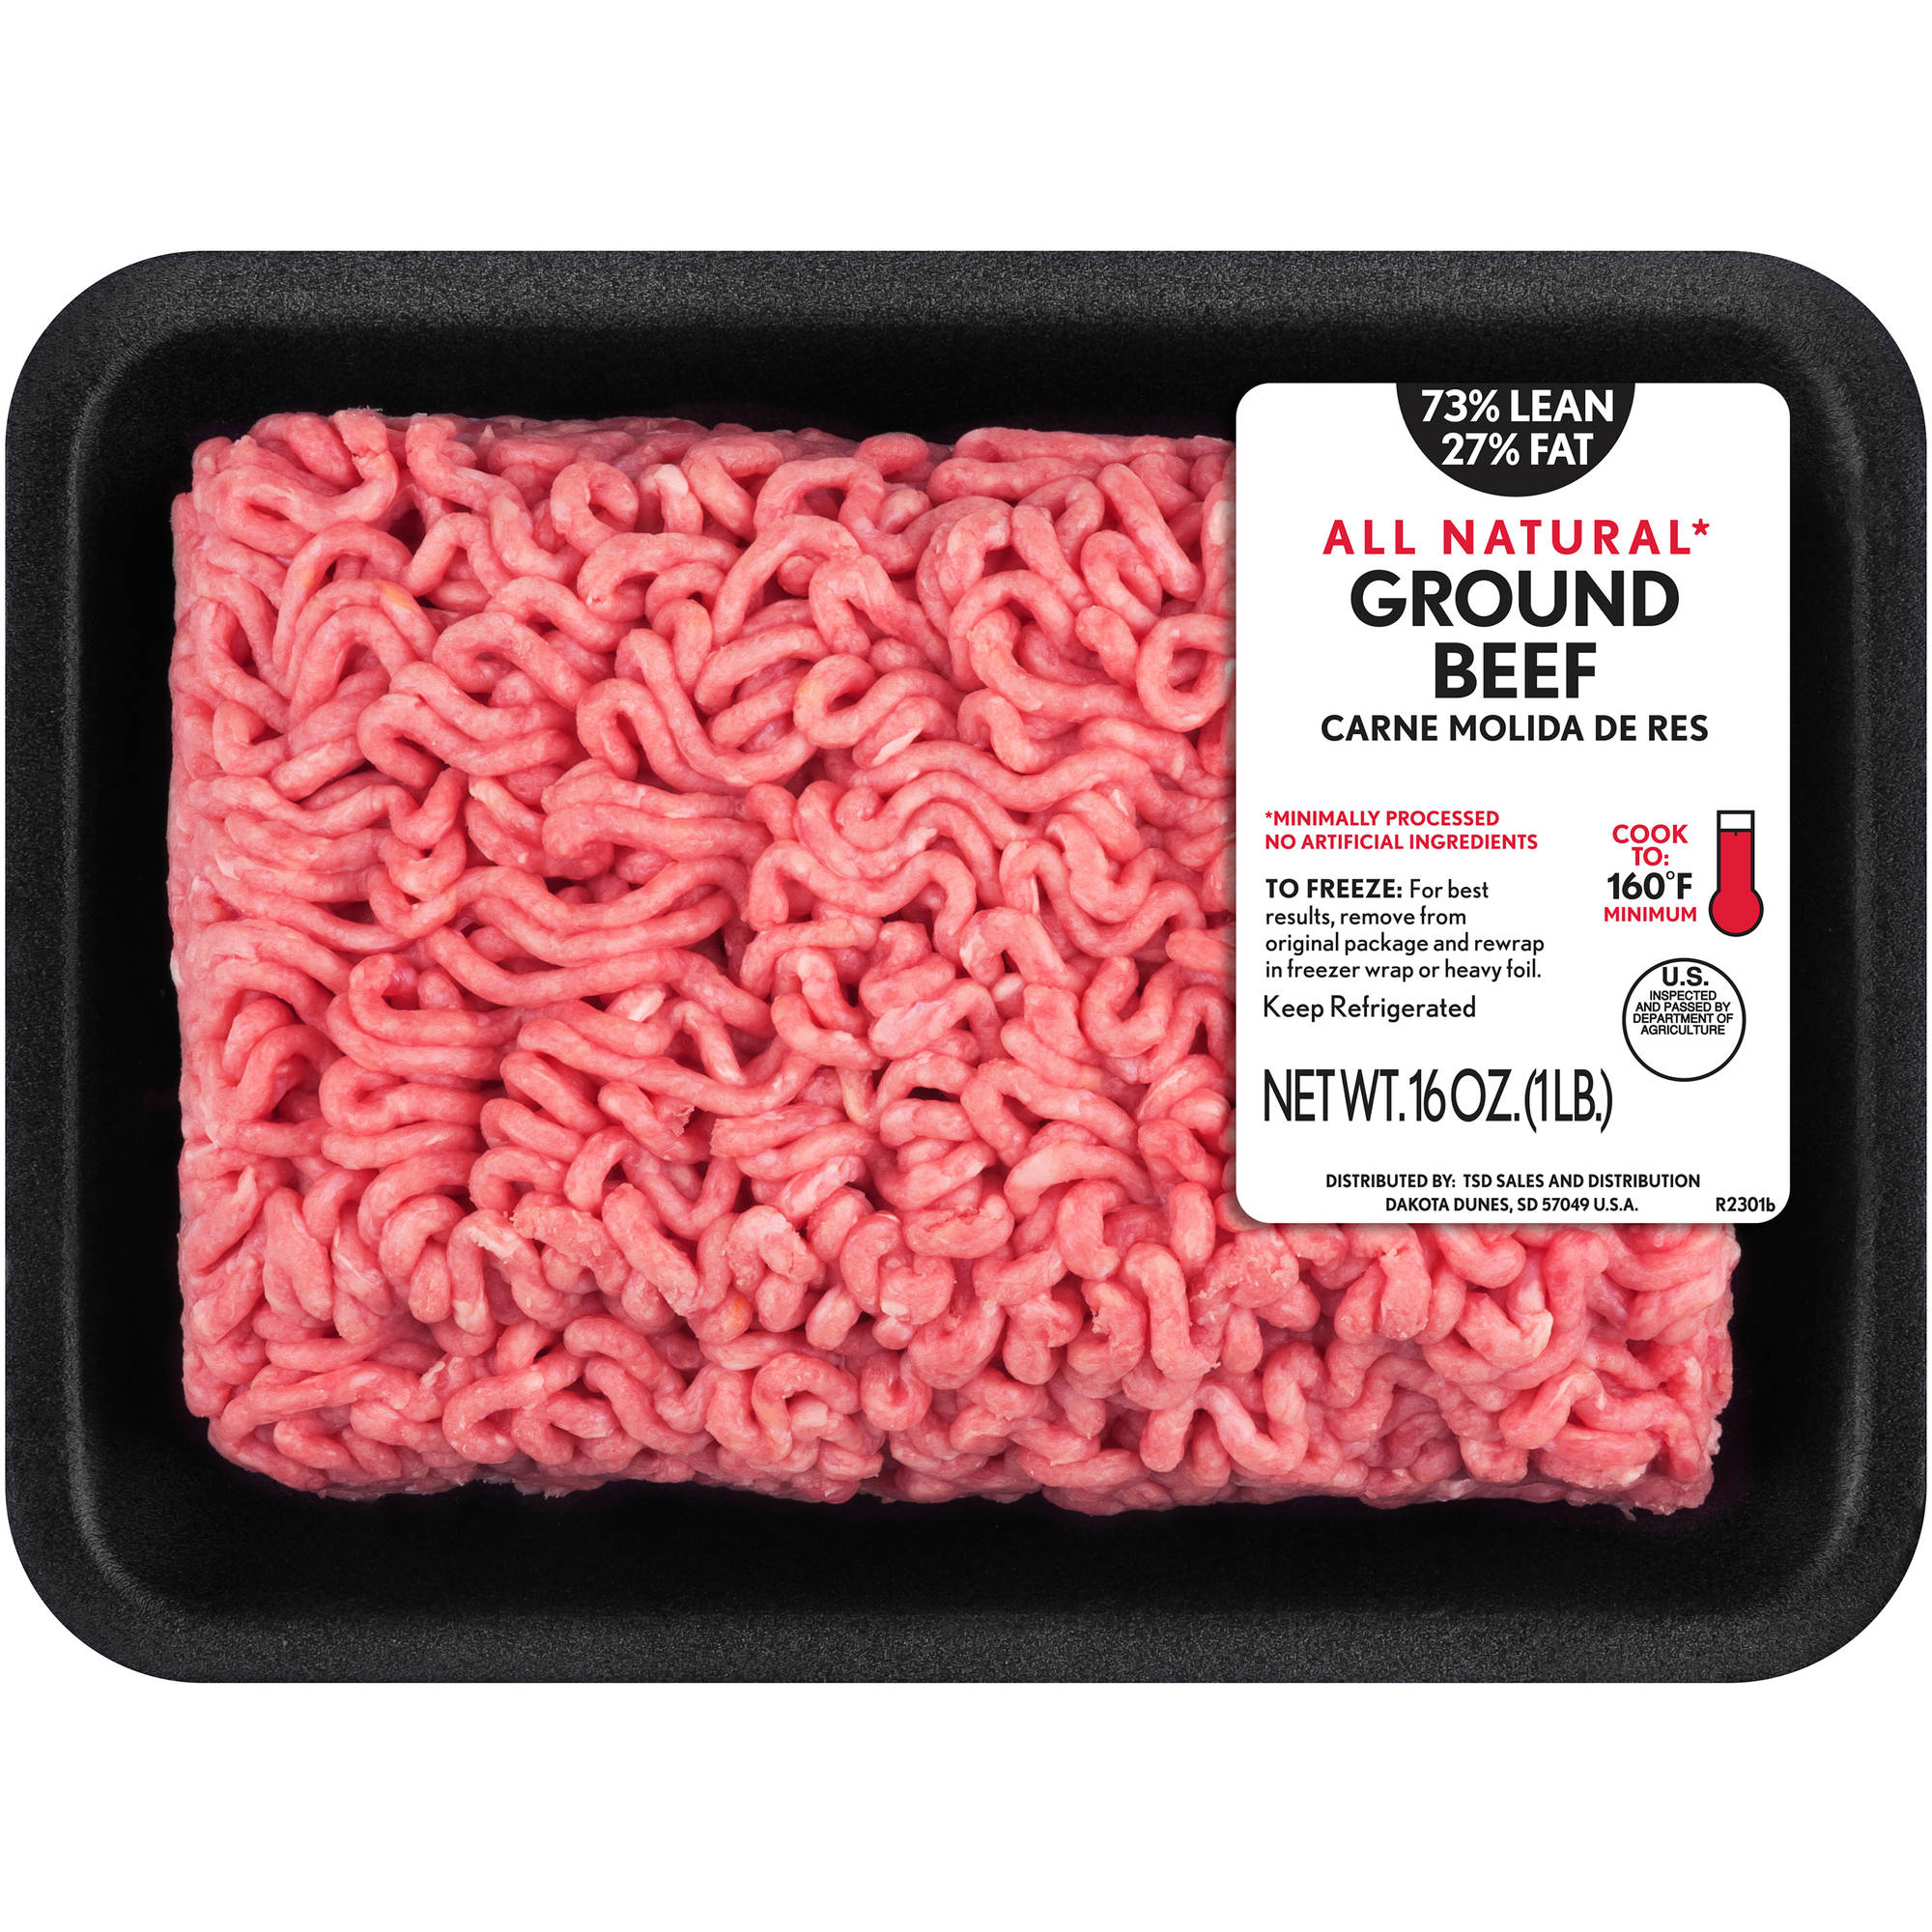 73% Lean/27% Fat Ground Beef, 1 lb